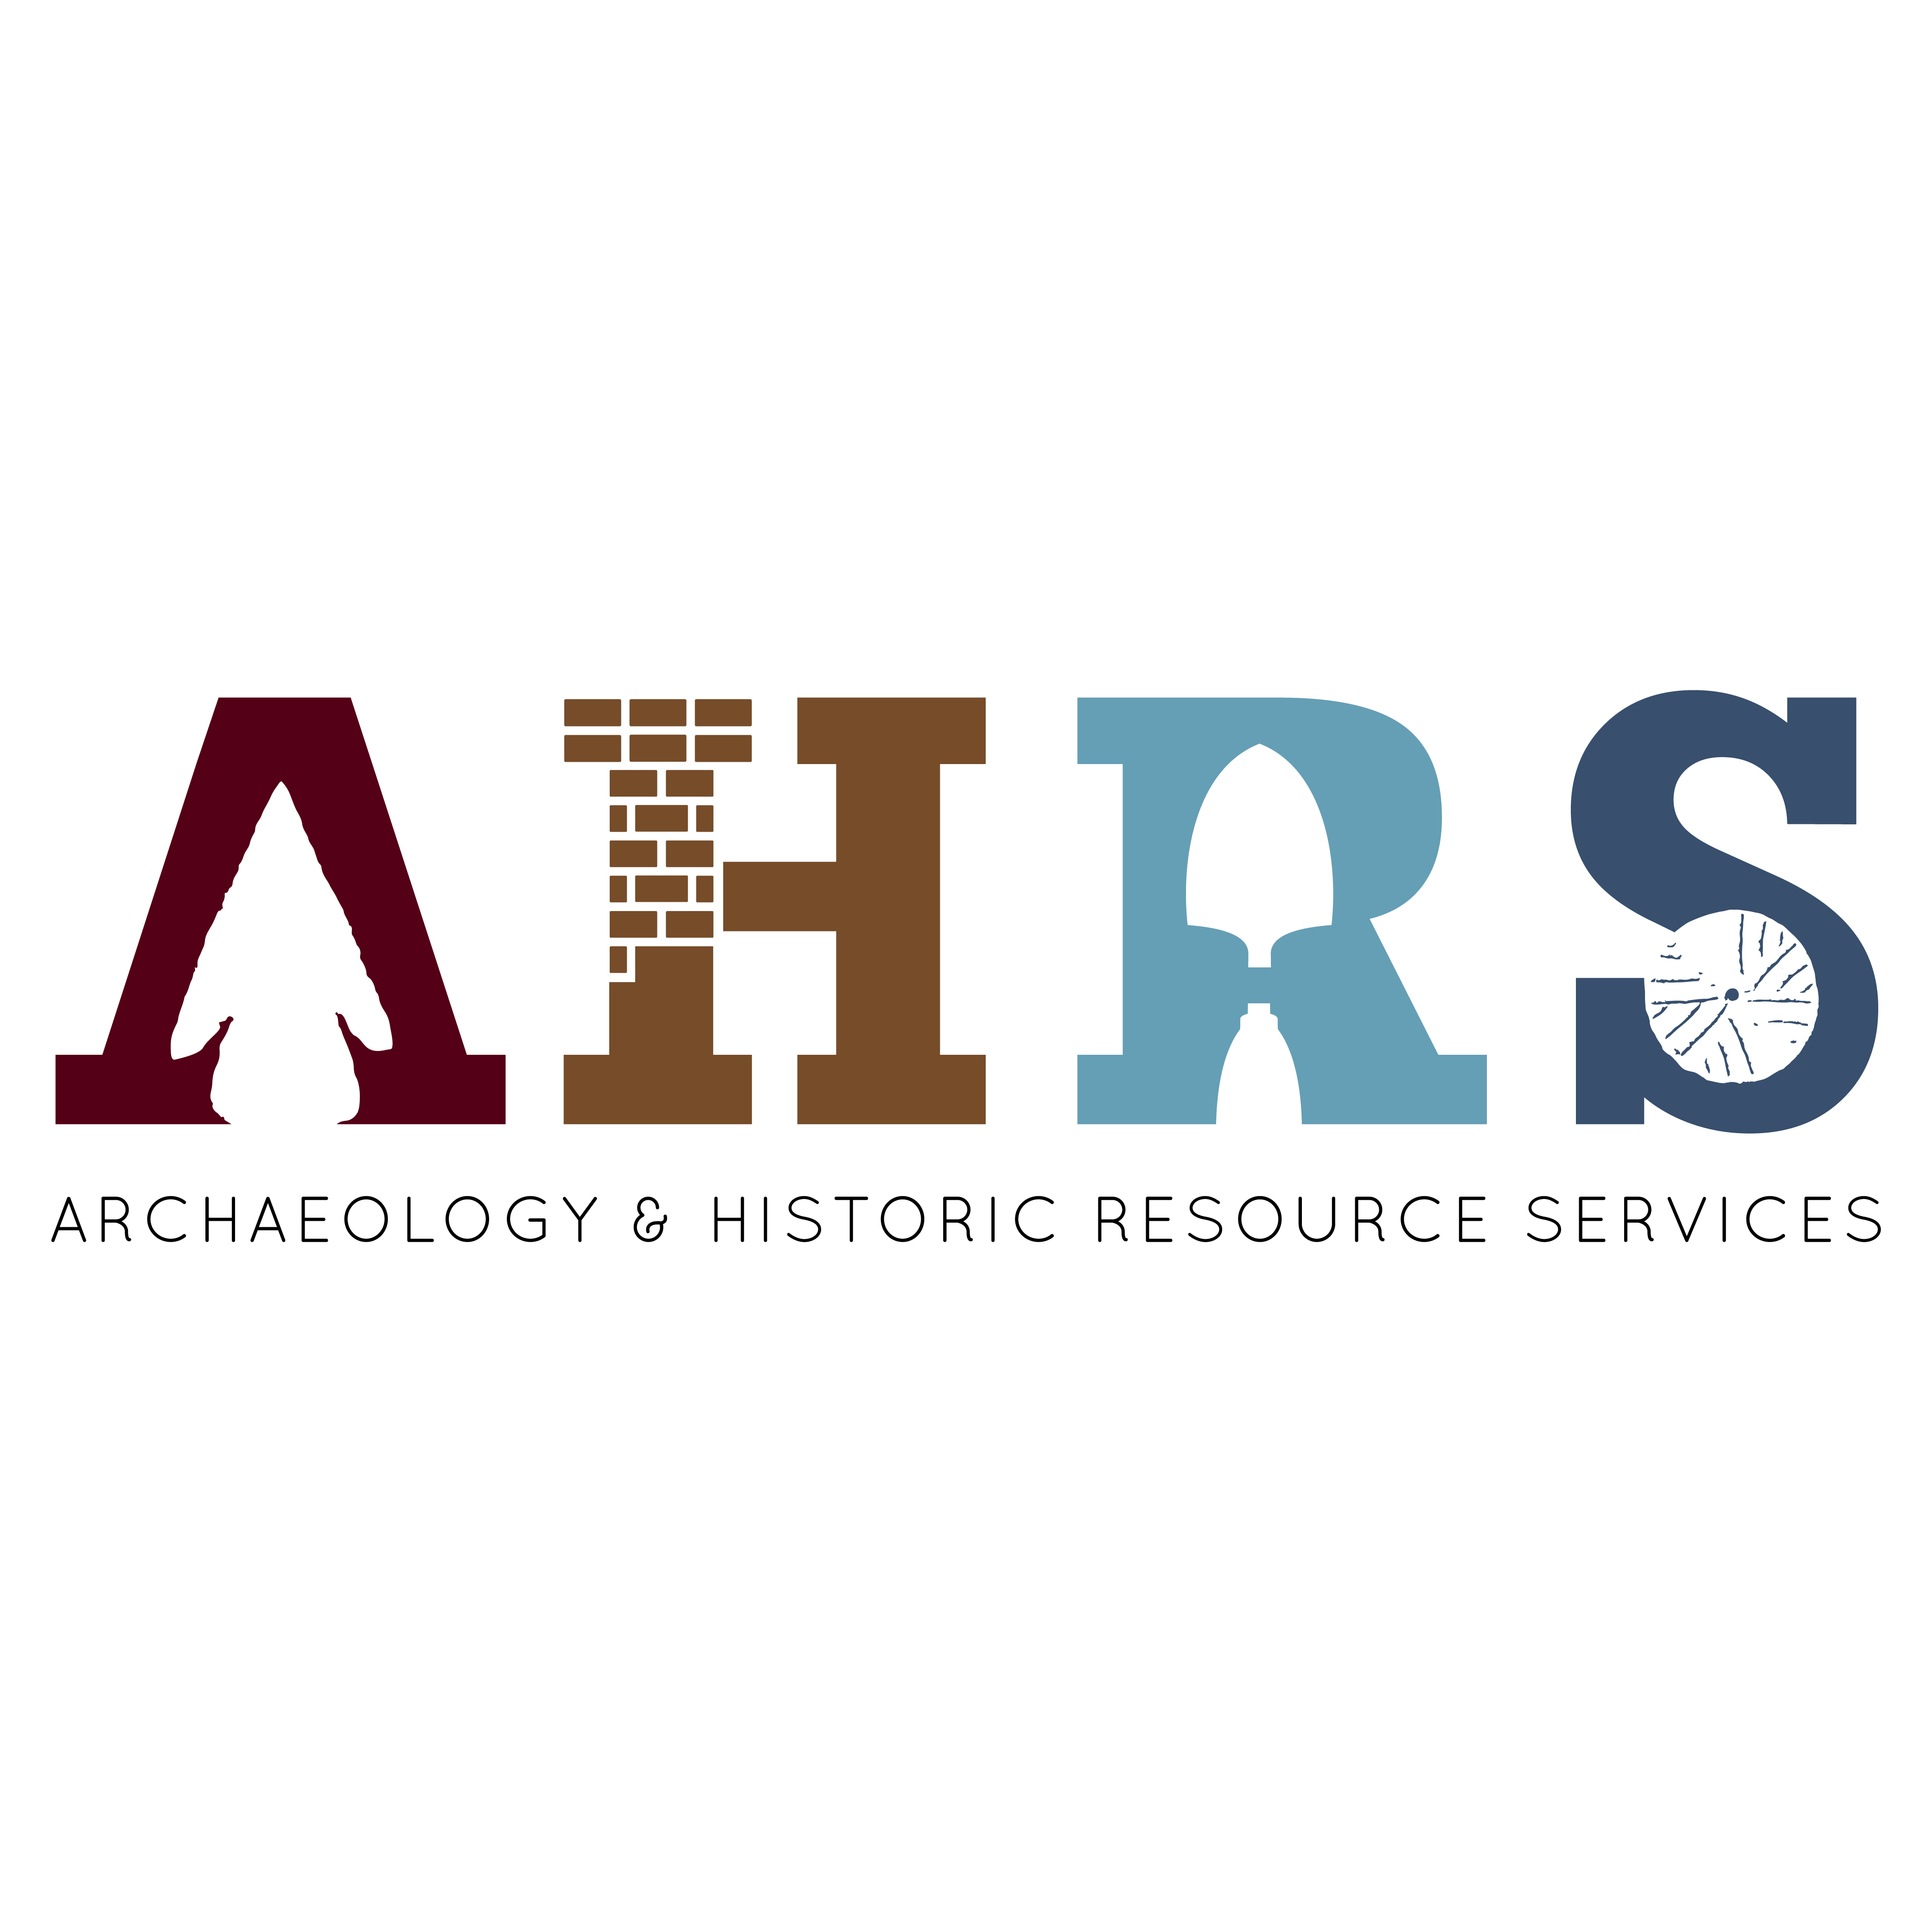 Archaeology & Historic Resource Services Logo